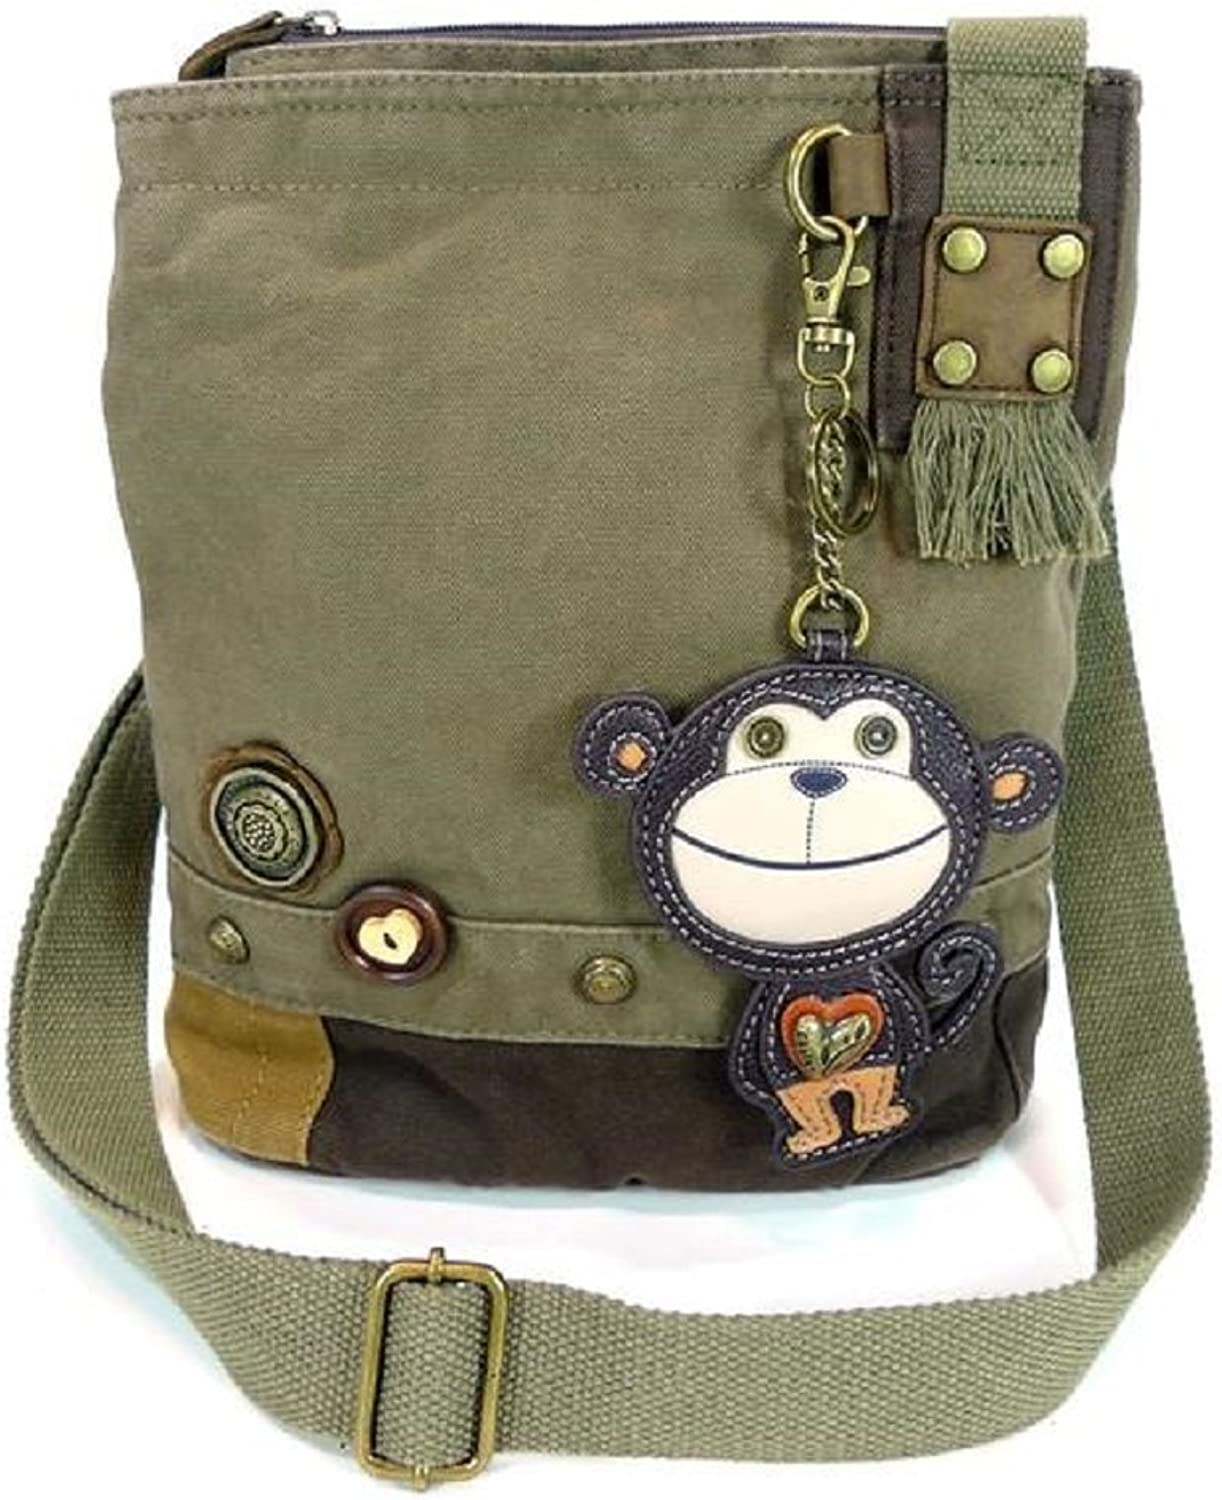 Chala Handbag Patch Crossbody SMARTIE MONKEY Dark Olive Green Canvas